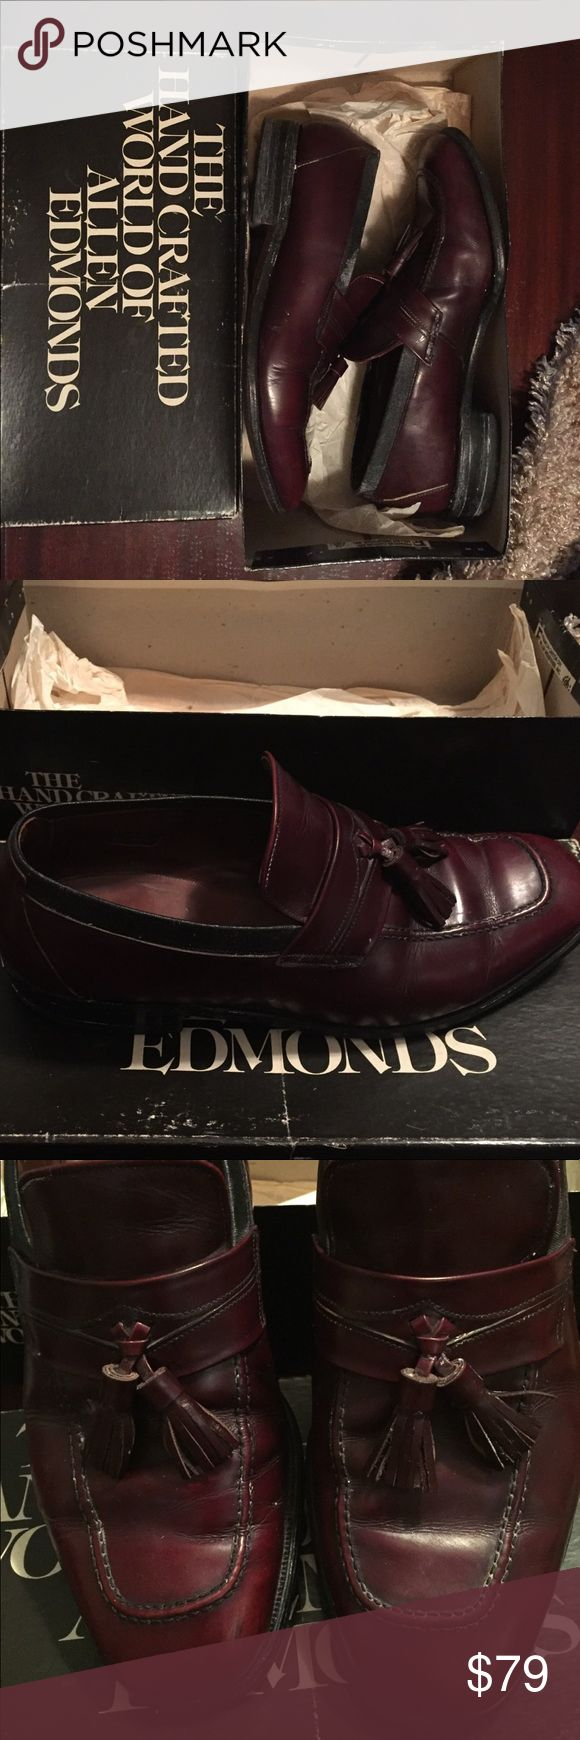 Allen Edmonds Burgundy Leather Loafer Slip Ons: 9M Allen Edmonds Burgundy Leather Loafer Slip Ons: 9M Worn to weddings and church events. Still in original box and tissue. Shows signs of wear on soles but in great condition. Allen Edmonds Shoes Loafers & Slip-Ons